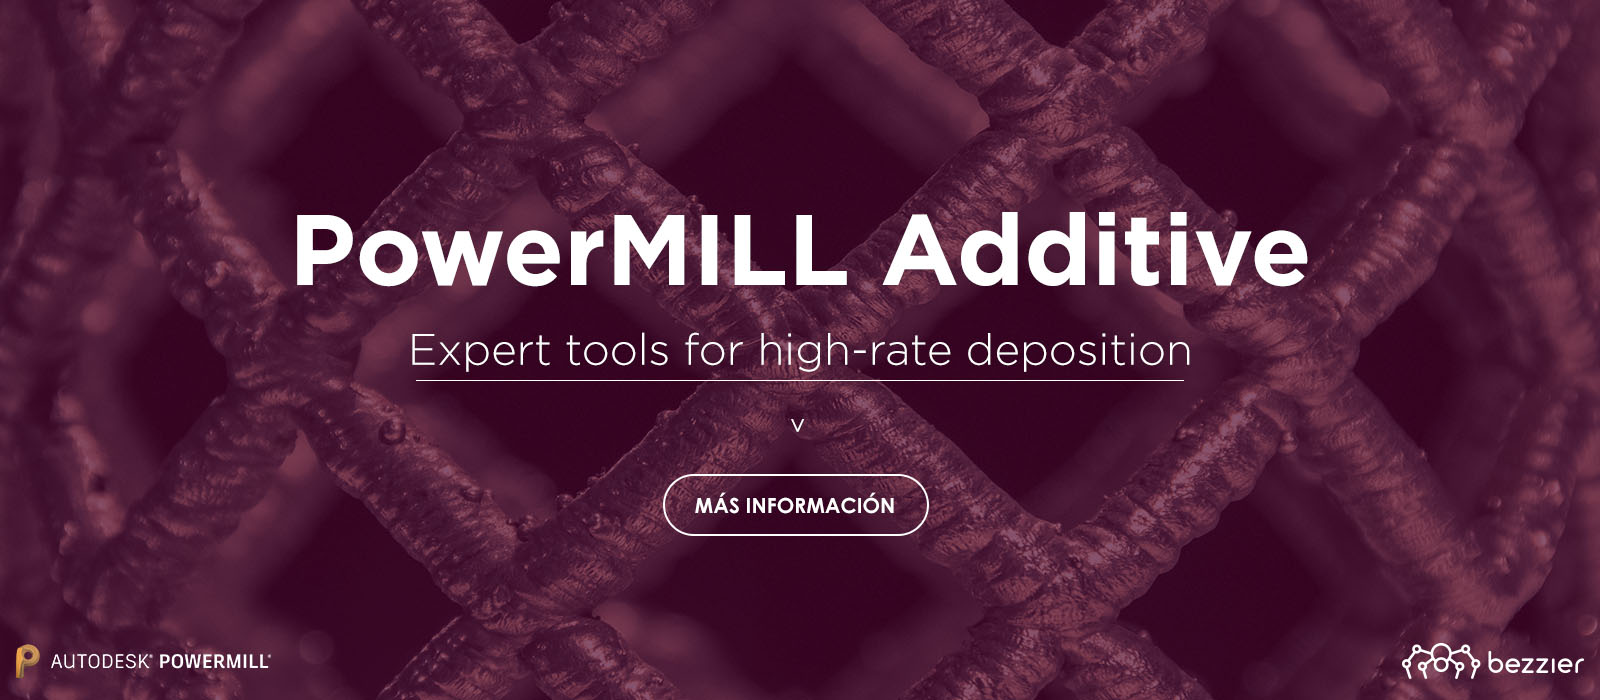 Novedades 2019: PowerMILL Additive